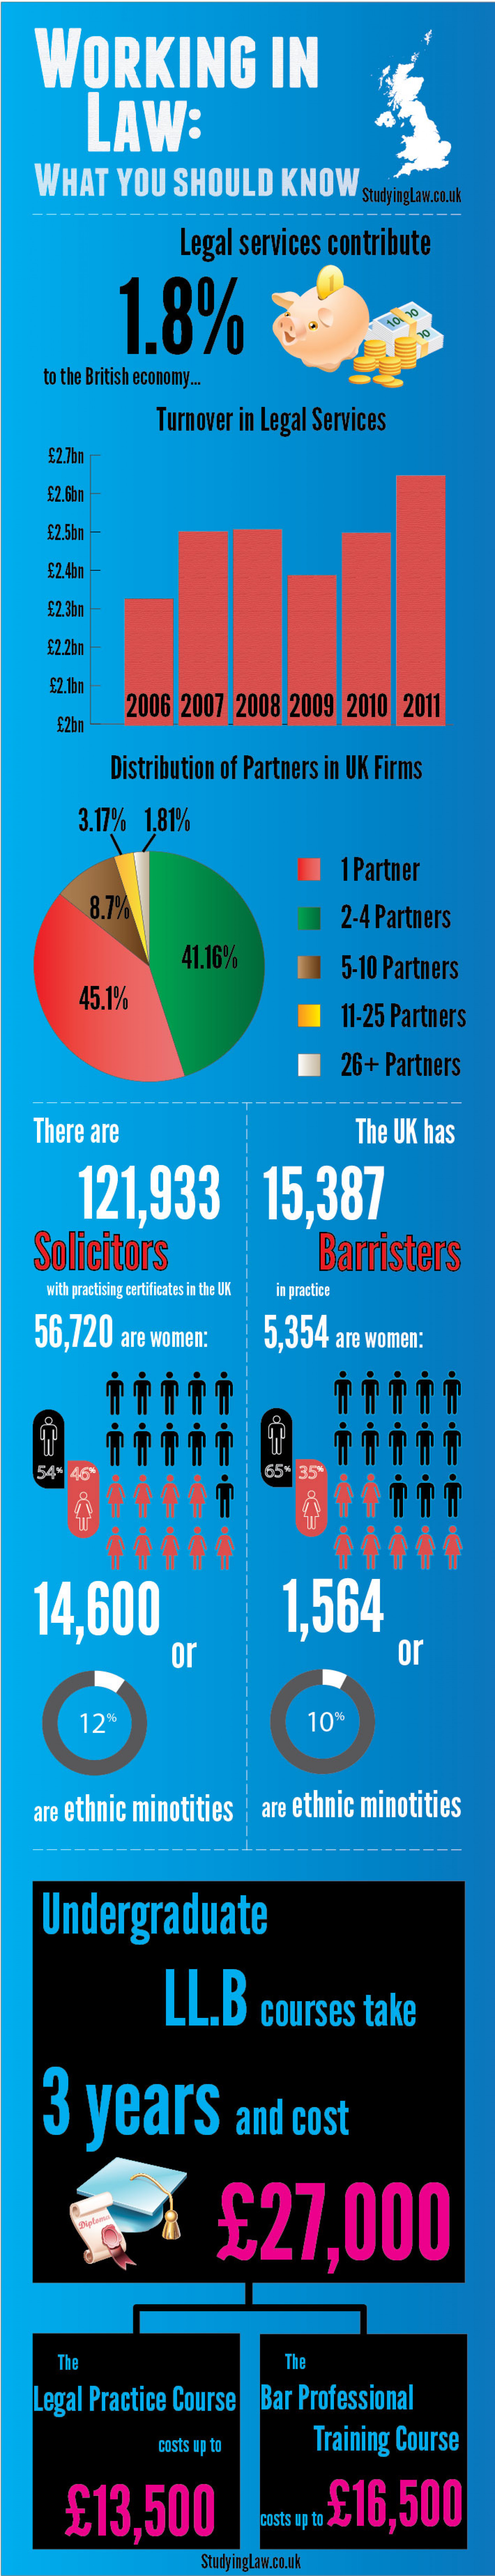 British Legal Services Infographic